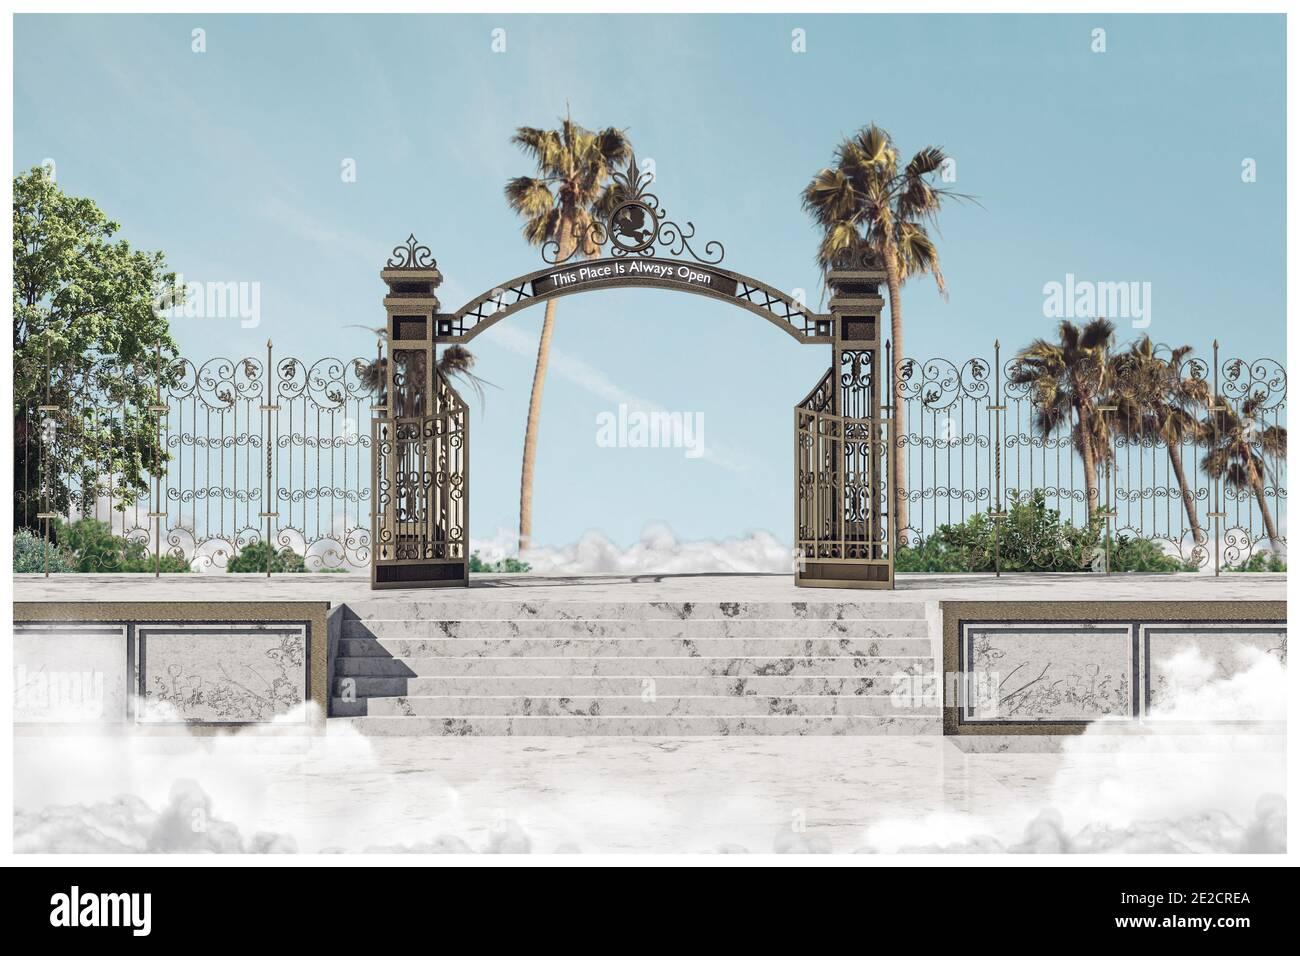 heaven gate, this place is always open, 3d illustration Stock Photo